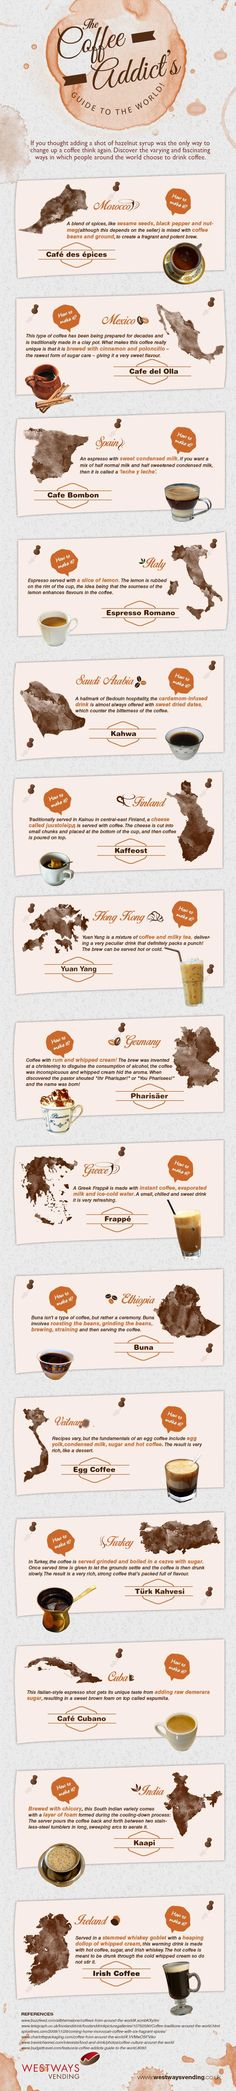 Coffees-of-the-World by weswaysvendindg via jetsetera #Infographic #Coffee